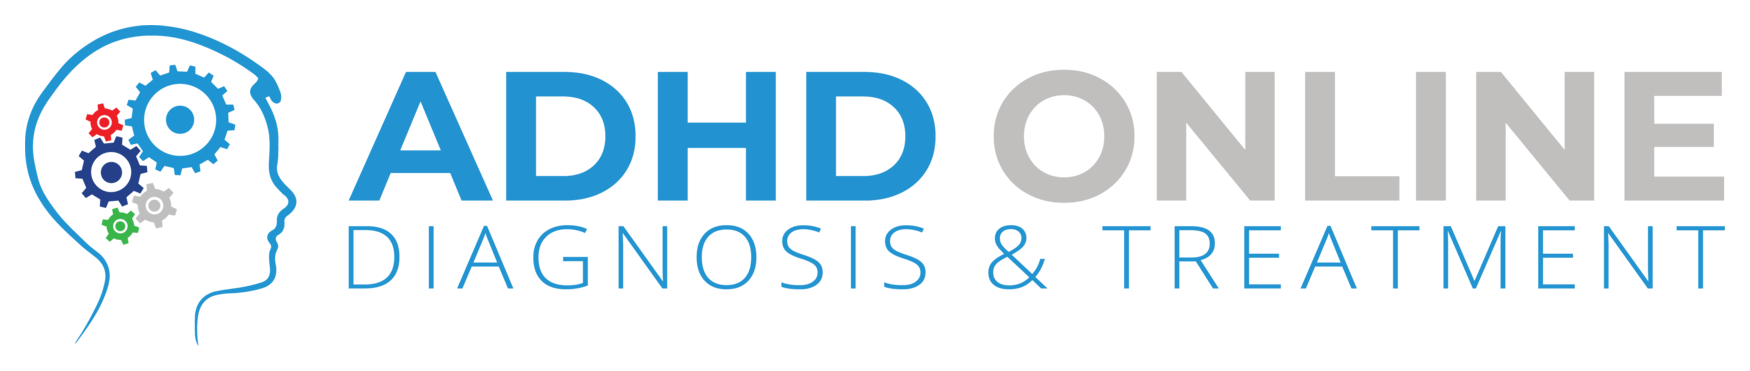 ADHD Online Taking Lead Role in Combating Misdiagnosis  of Girls and Women With ADHD